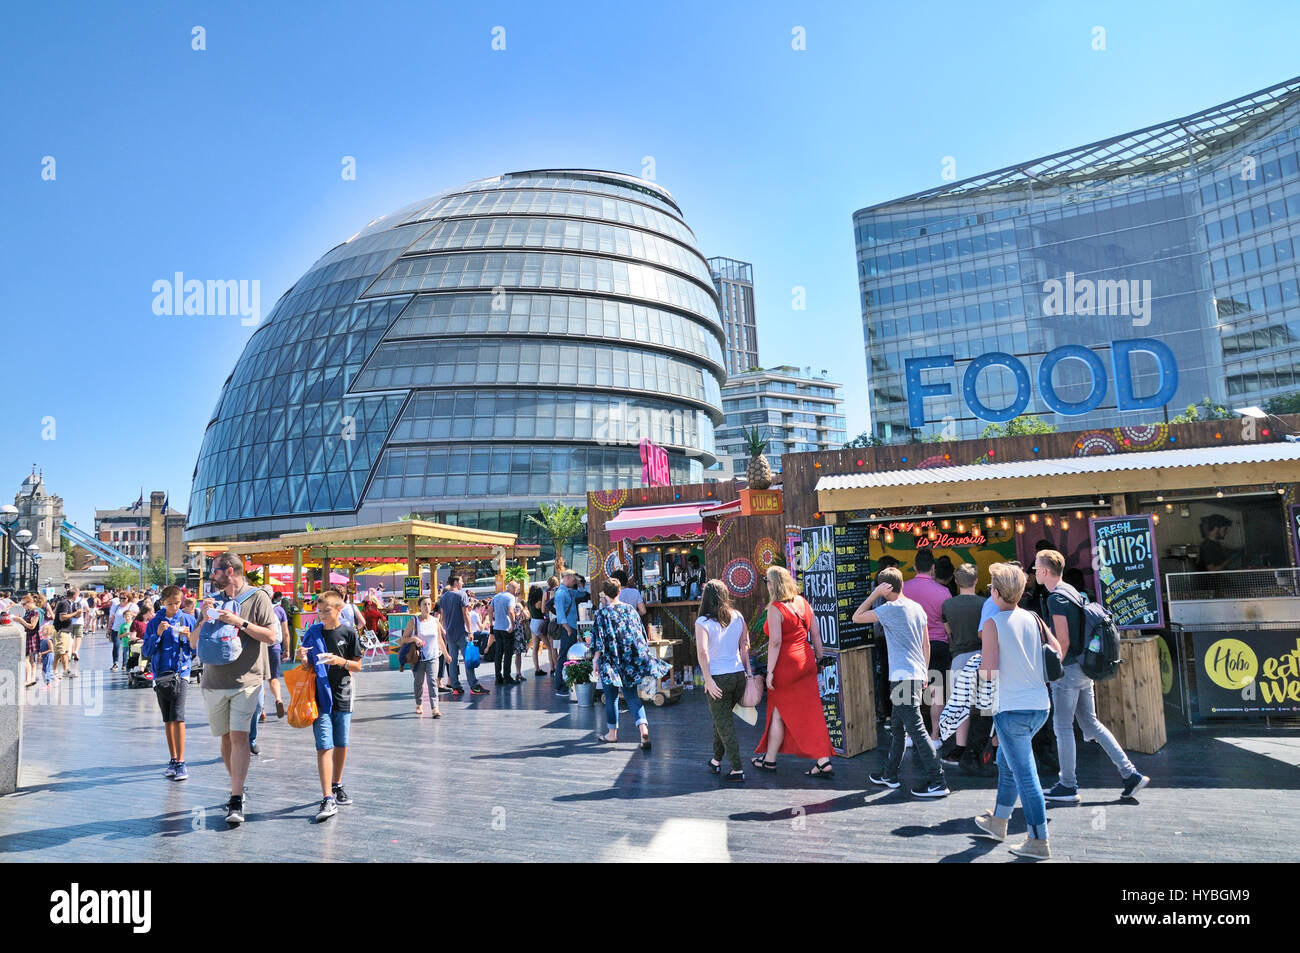 More London Riverside and City Hall.  People enjoying the summer weather and food stalls in the capital. - Stock Image